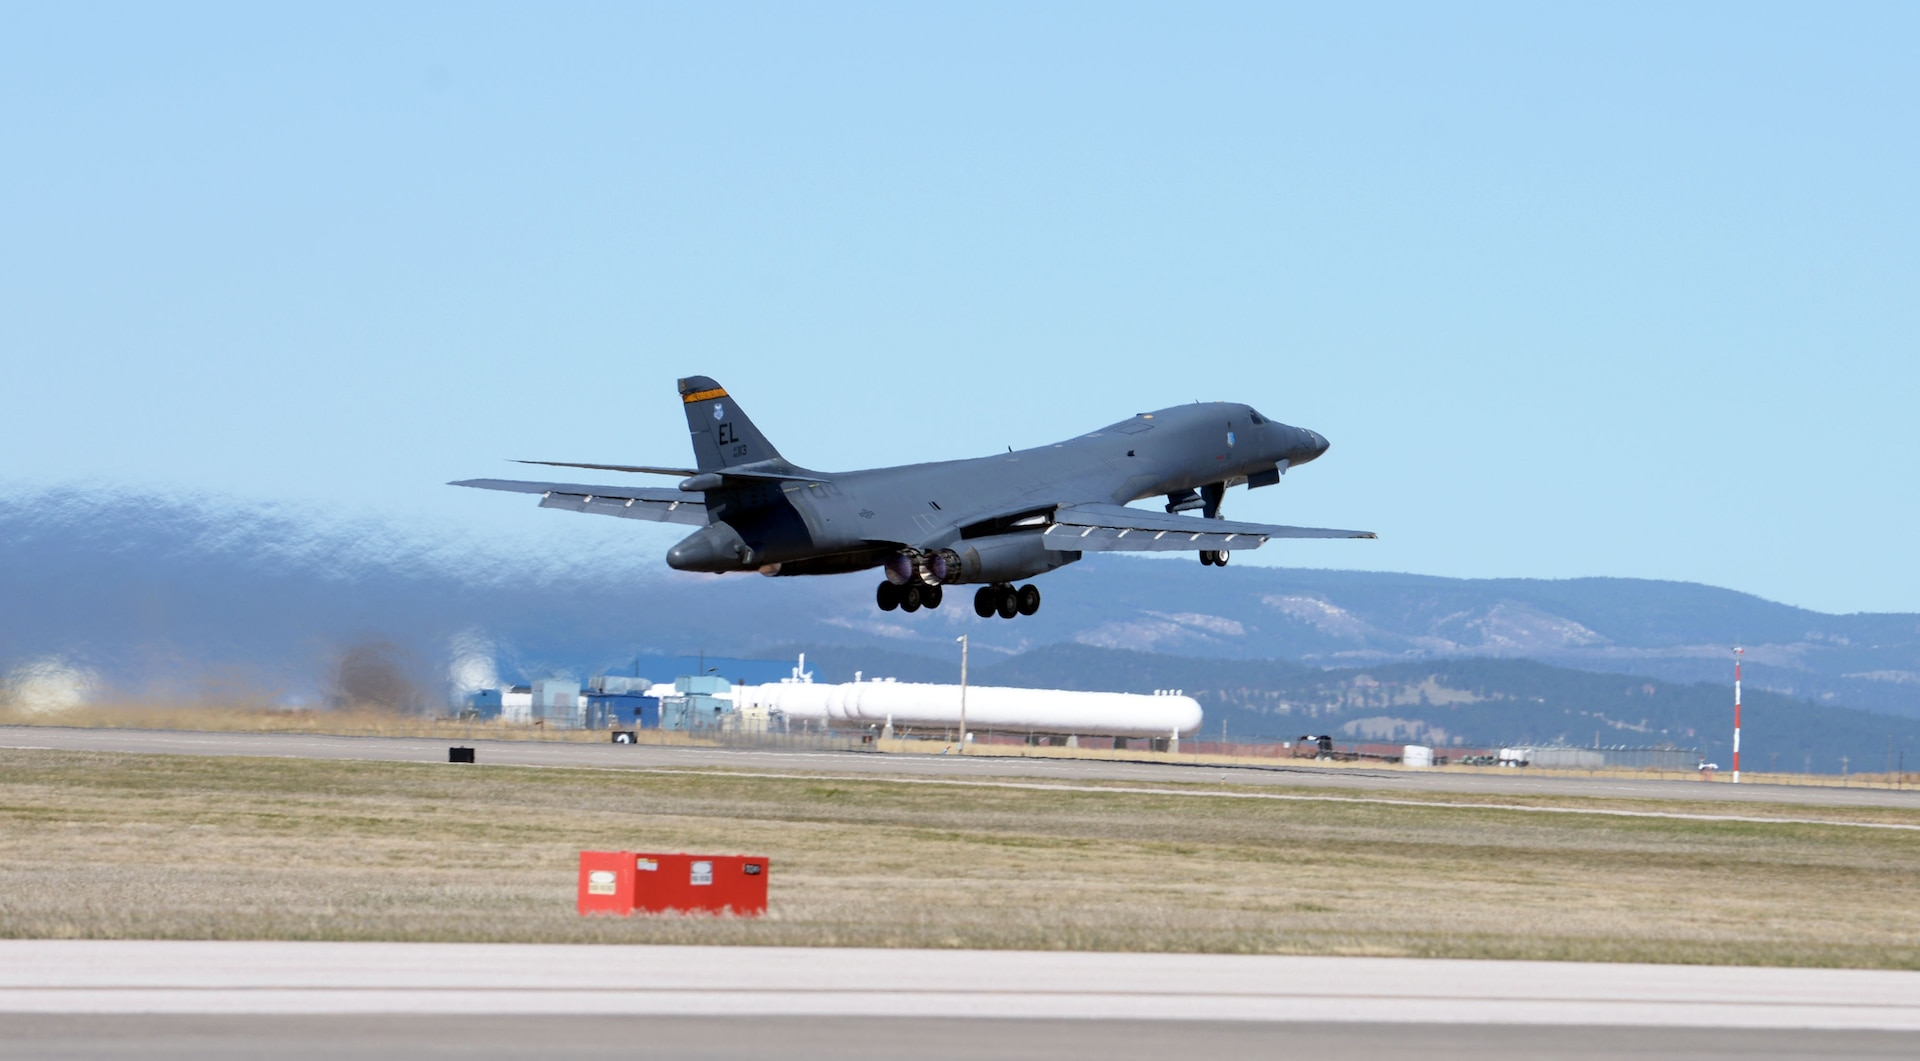 A U.S. Air Force B-1B Lancer thunders down the runway at Ellsworth Air Force Base, S.D., April 21, 2020. The B-1 bomber flew from the continental United States and integrated with the Koku Jieitai (Japan Air Self Defense Force or JASDF) to conduct bilateral and theater familiarization training near Japan. (U.S. Air Force photo by Airman Quentin K. Marx)